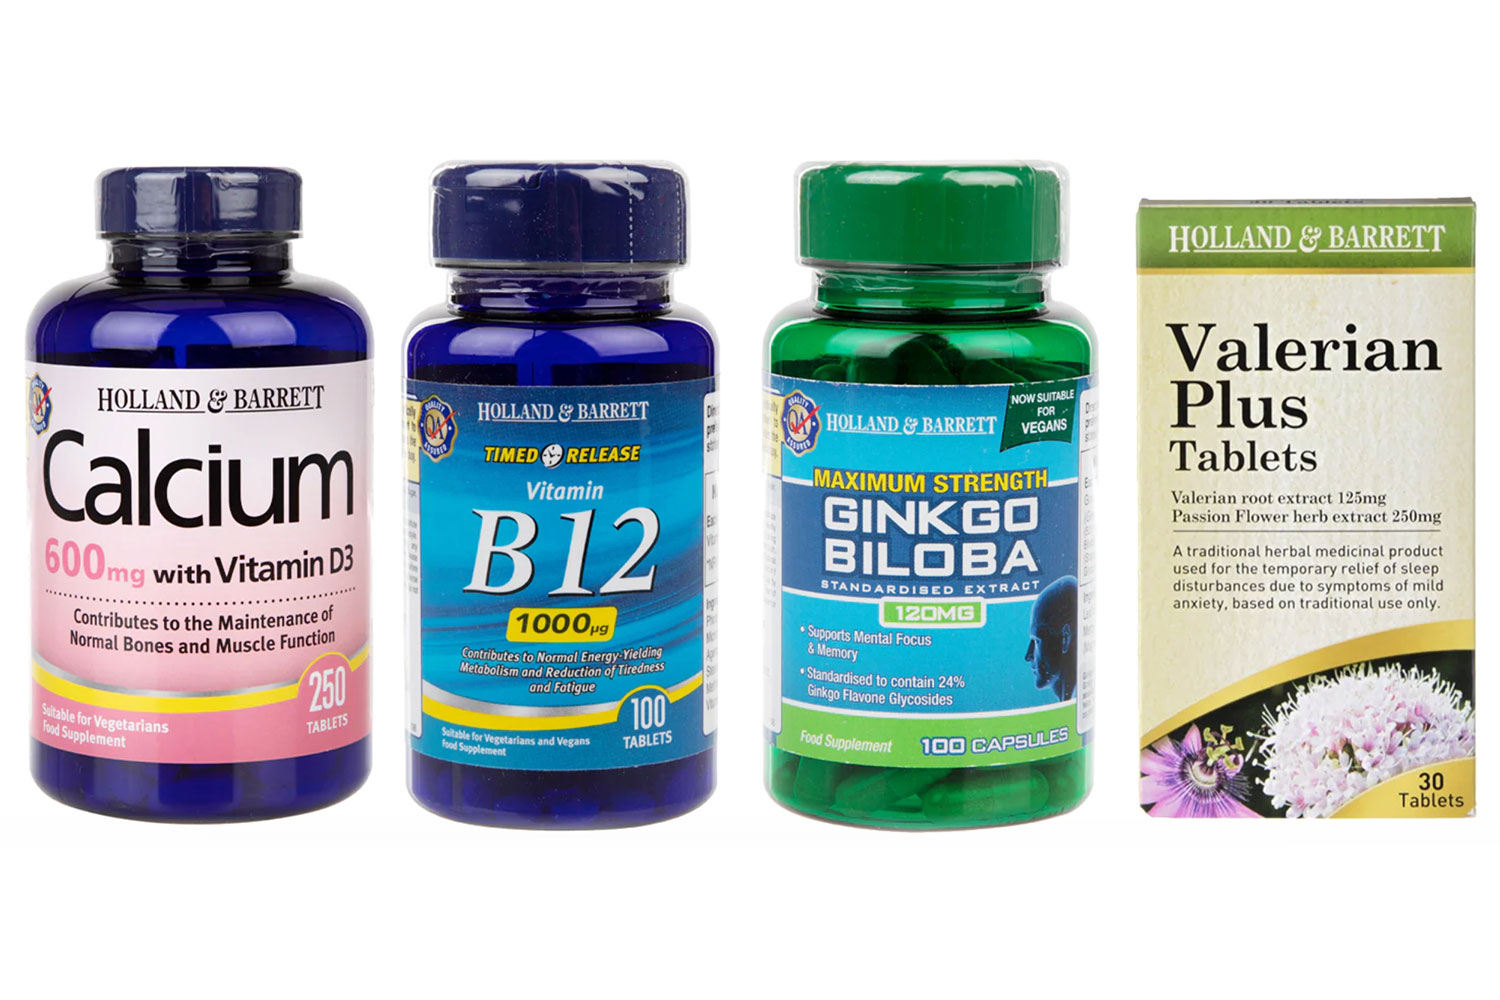 Now is the perfect time to snap up vitamins and supplements